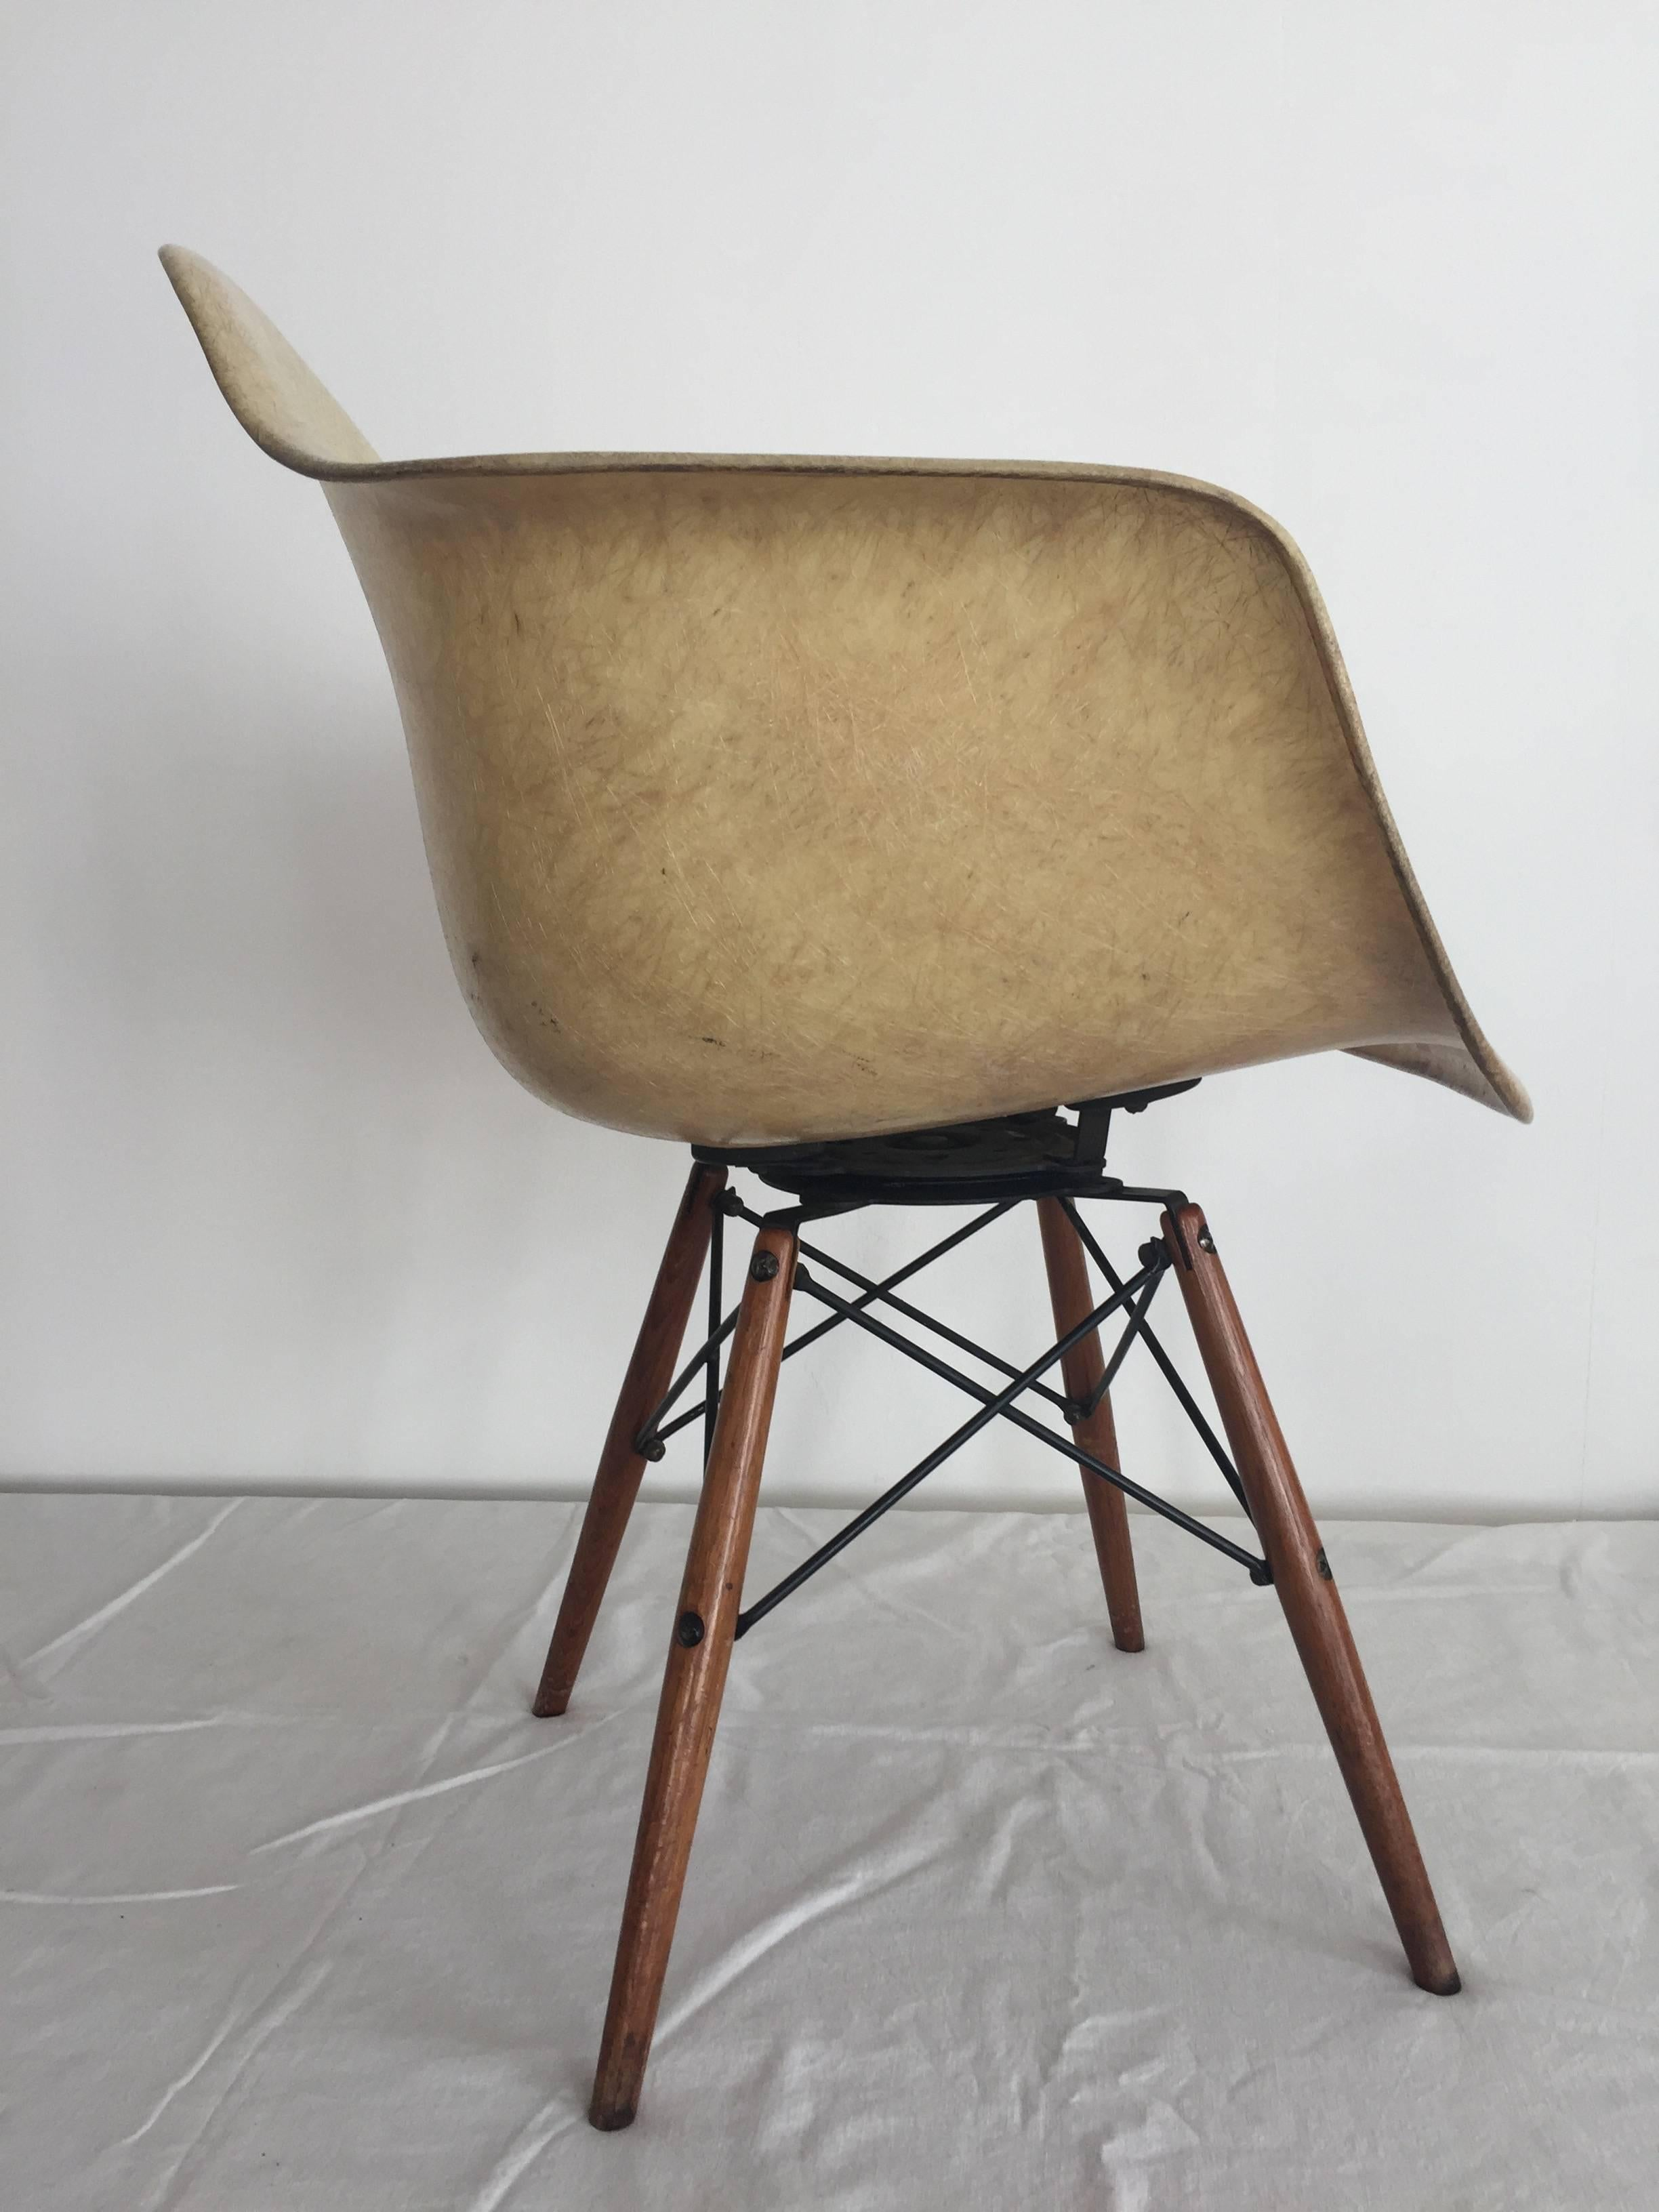 seng chicago chair dinning room chairs first edition charles eames paw swivel fibreglass shell dowel production generation 1949 1950 zenith herman miller rope